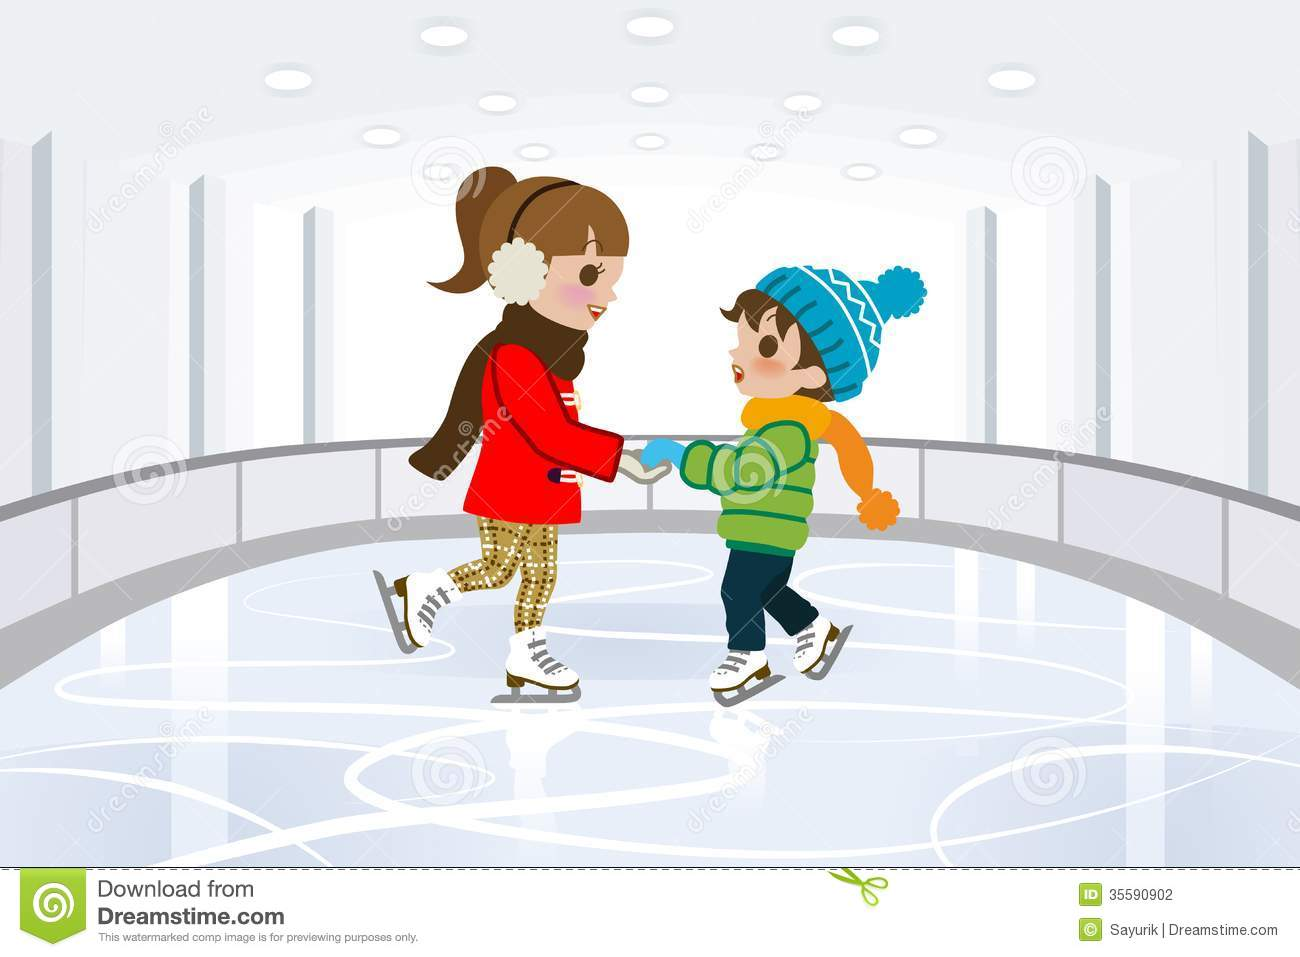 Kids ice skating indoors